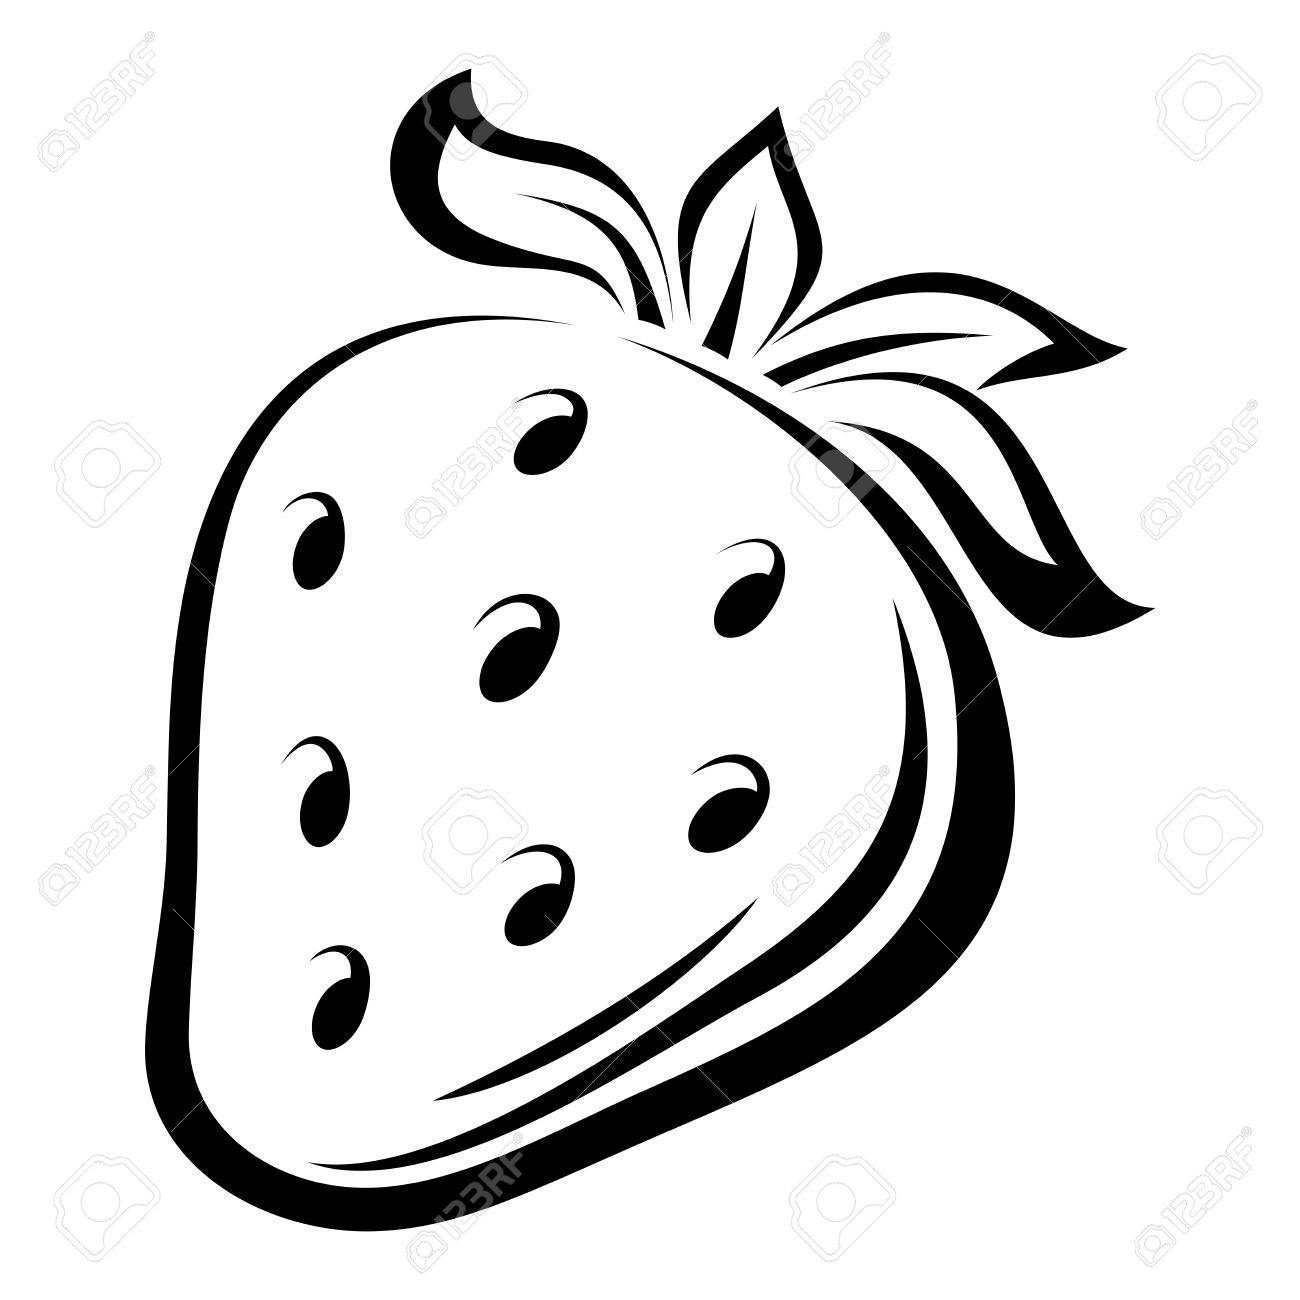 Contour Drawing Of Strawberry Vector Illustration Royalty Free ... for Clipart Strawberry Black And White  599kxo